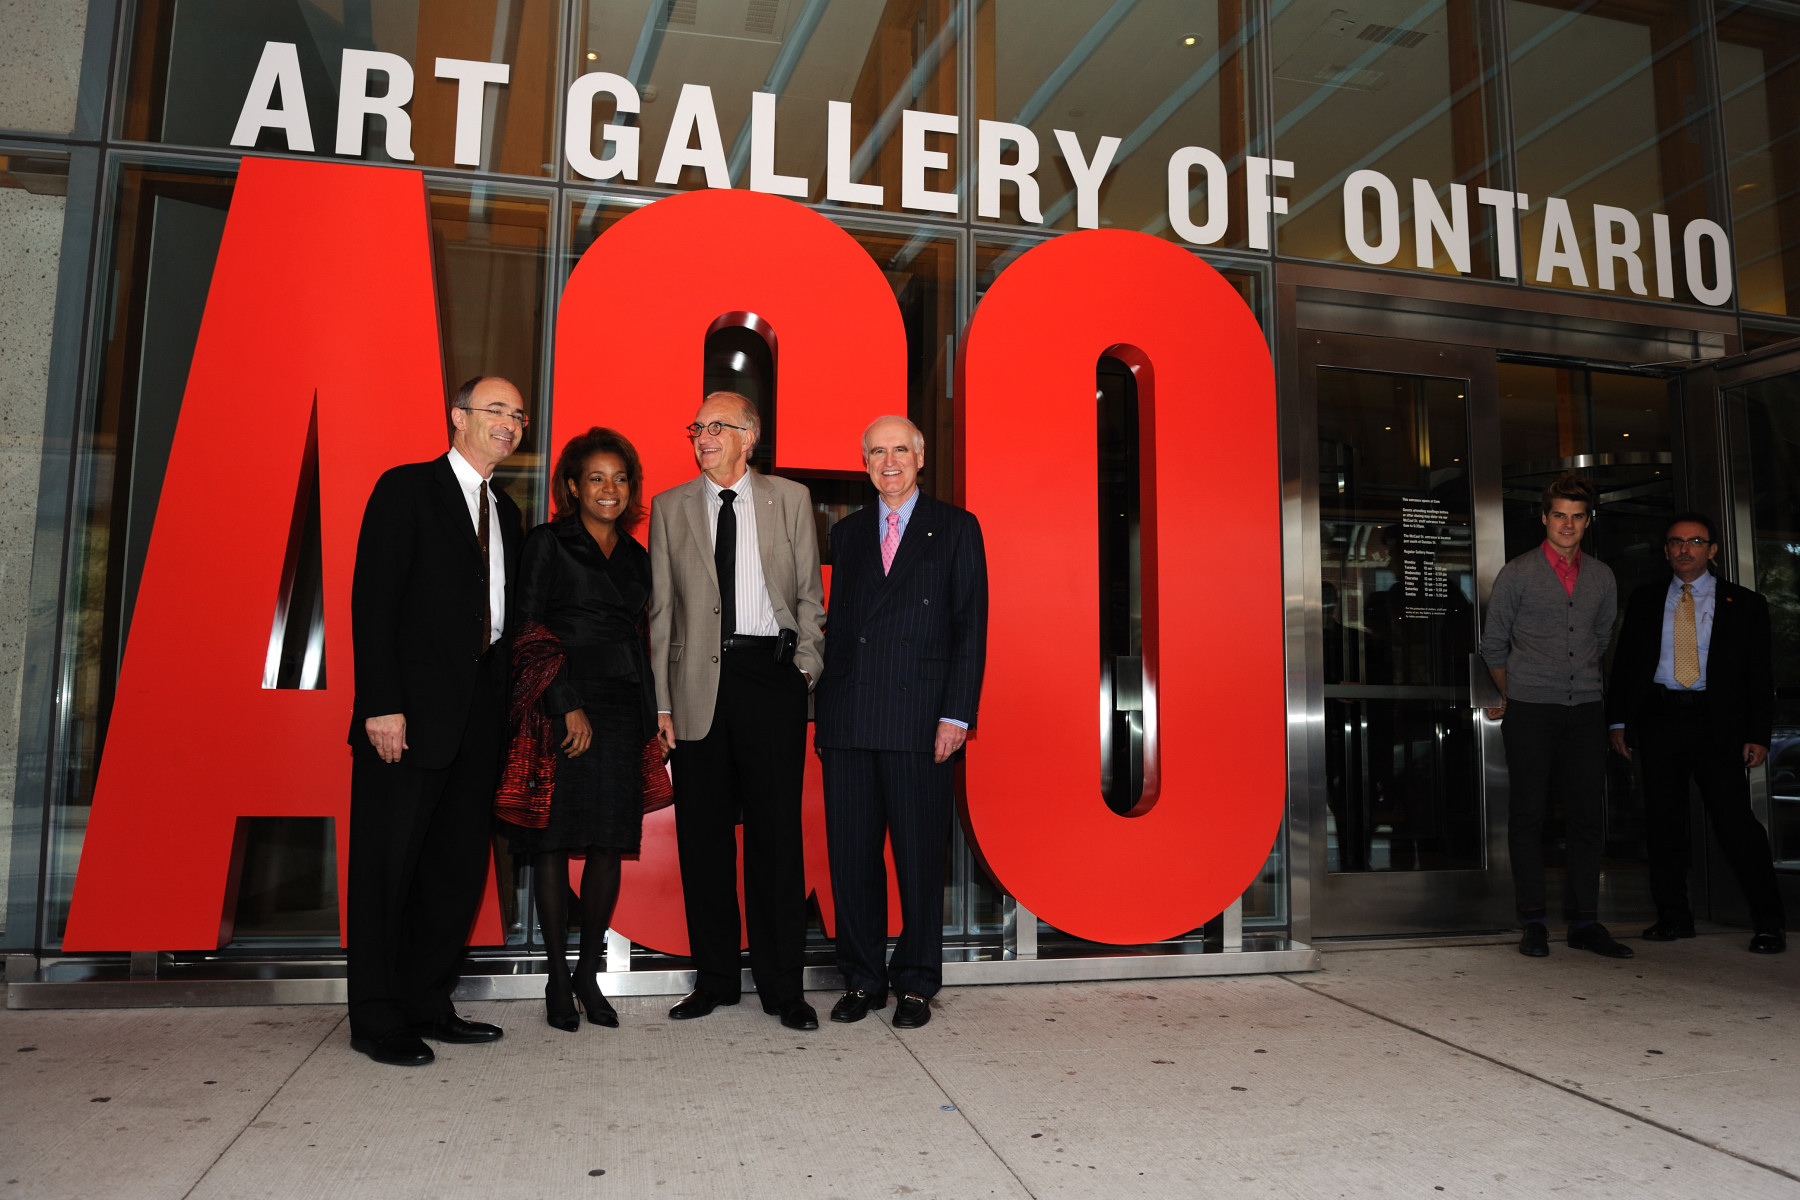 Their Excellencies the Right Honourable Michaëlle Jean, Governor General of Canada, and Mr. Jean-Daniel Lafond visited the redesigned Art Gallery of Ontario (AGO) and viewed its collections.